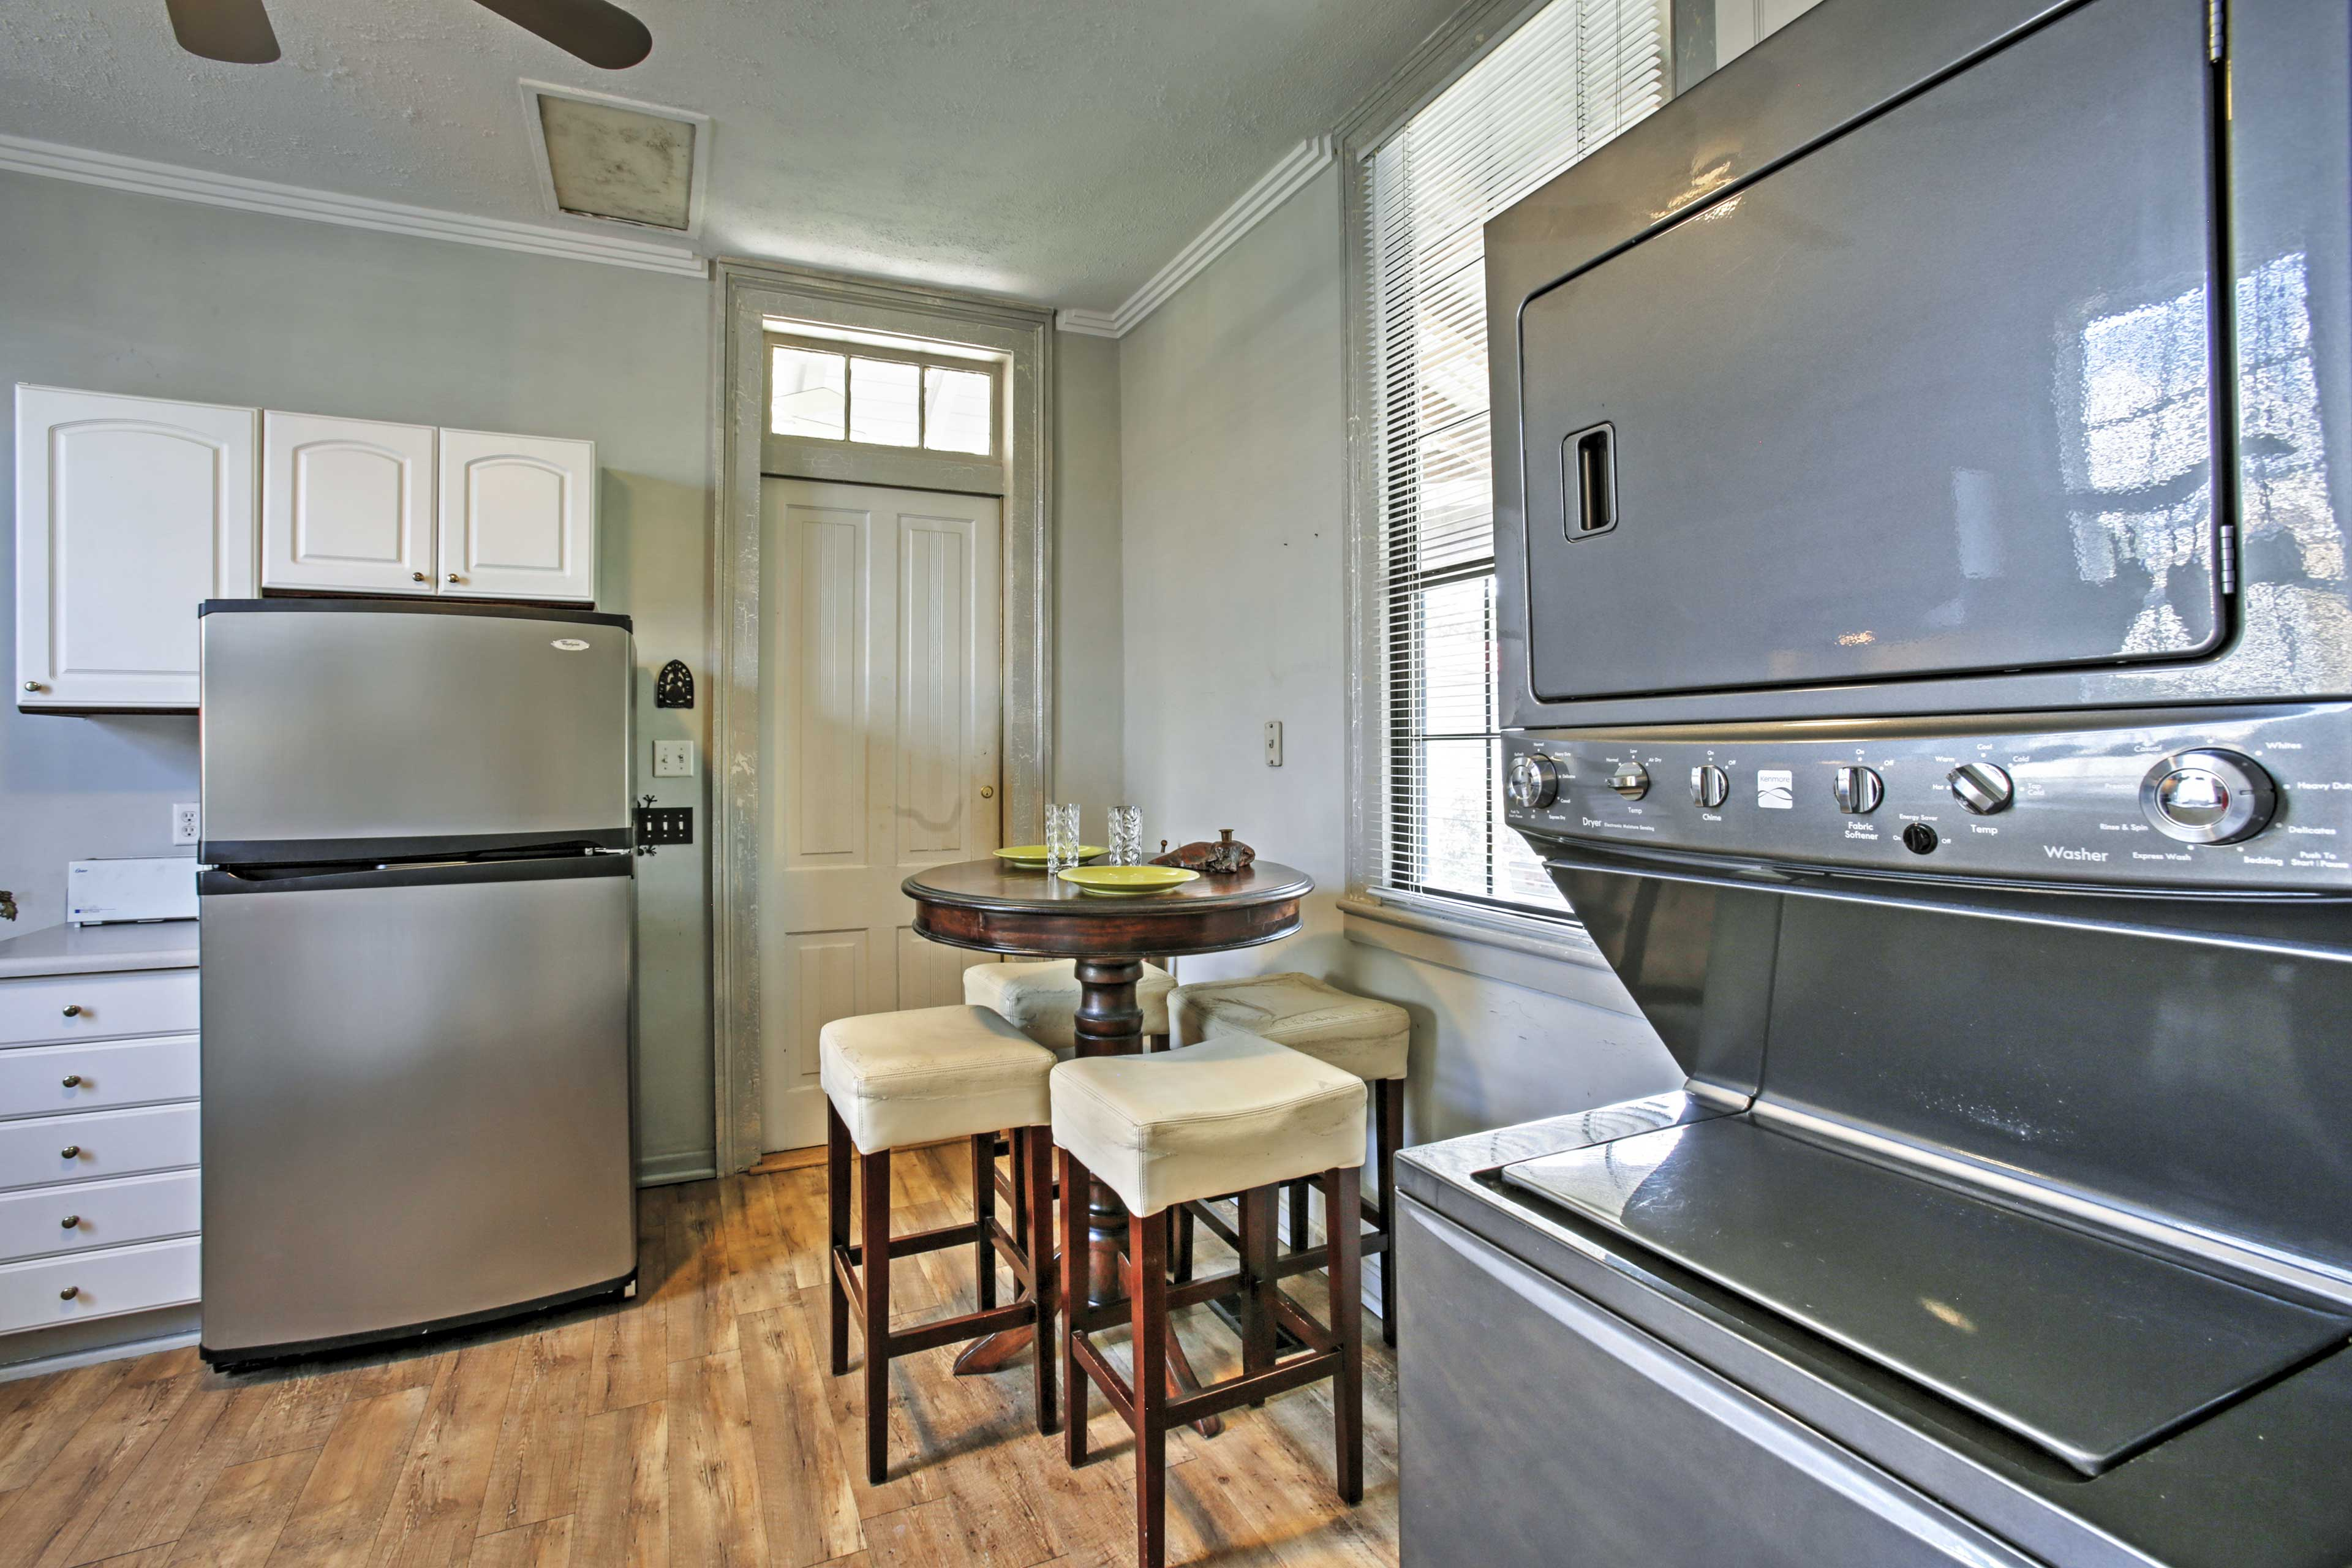 Enjoy a meal in the kitchen around the quaint 4-person dining table.